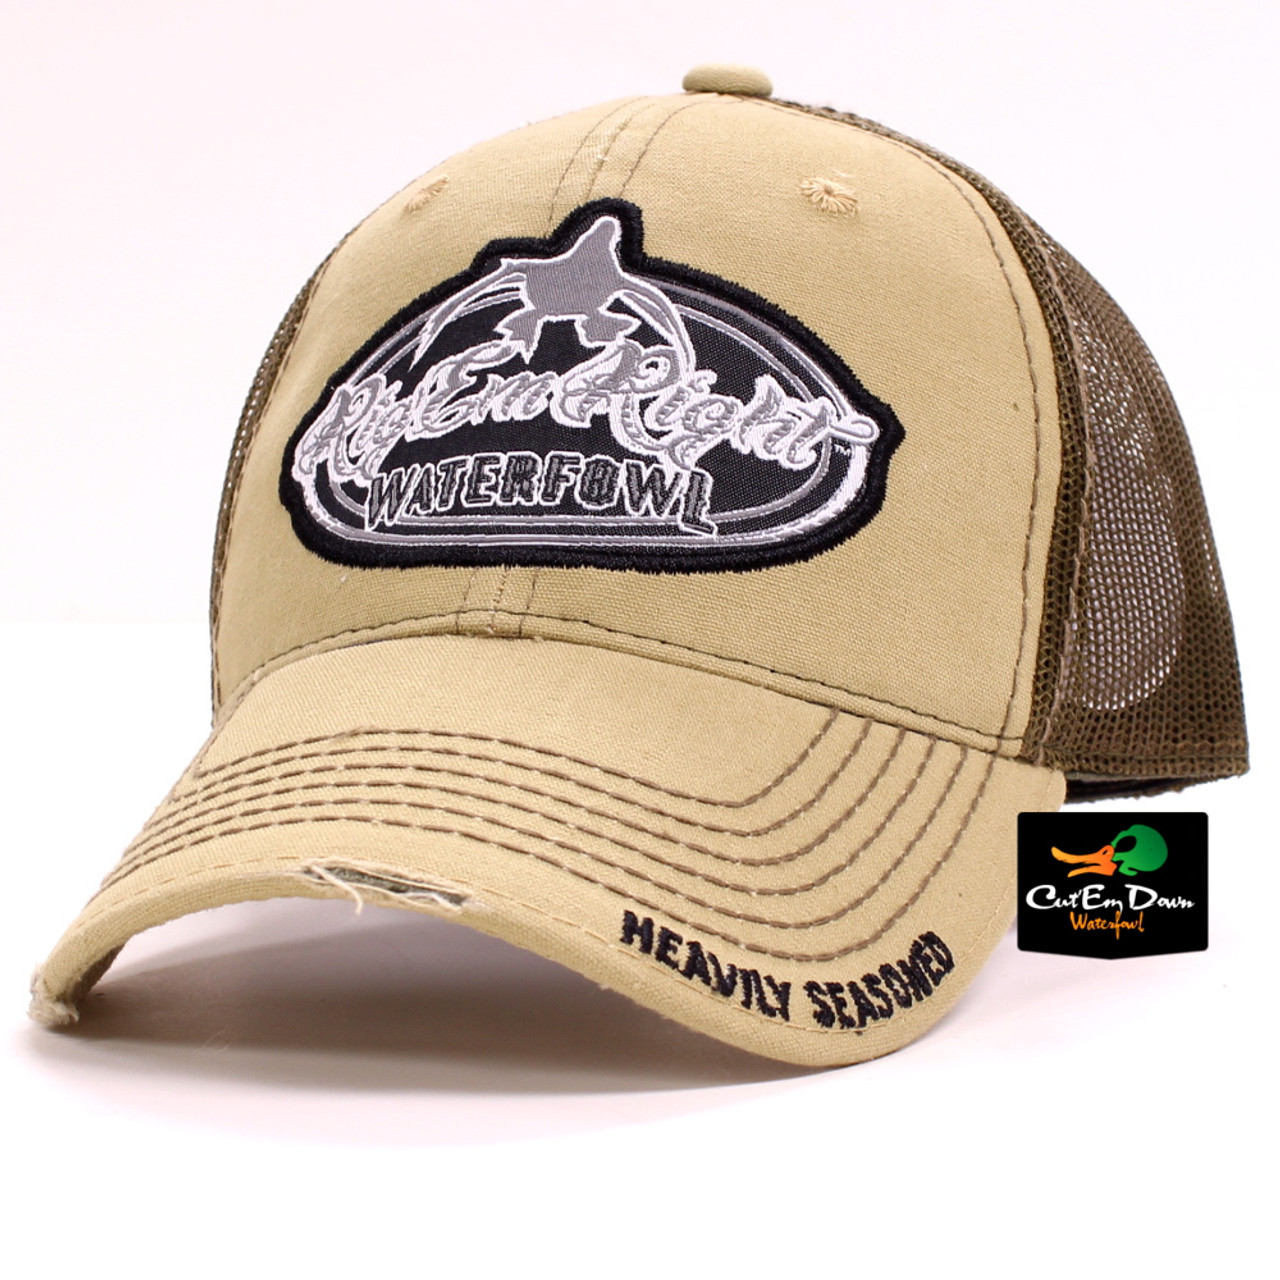 Rig Em Right Waterfowl Trucker Hat eafb8cdbeb8